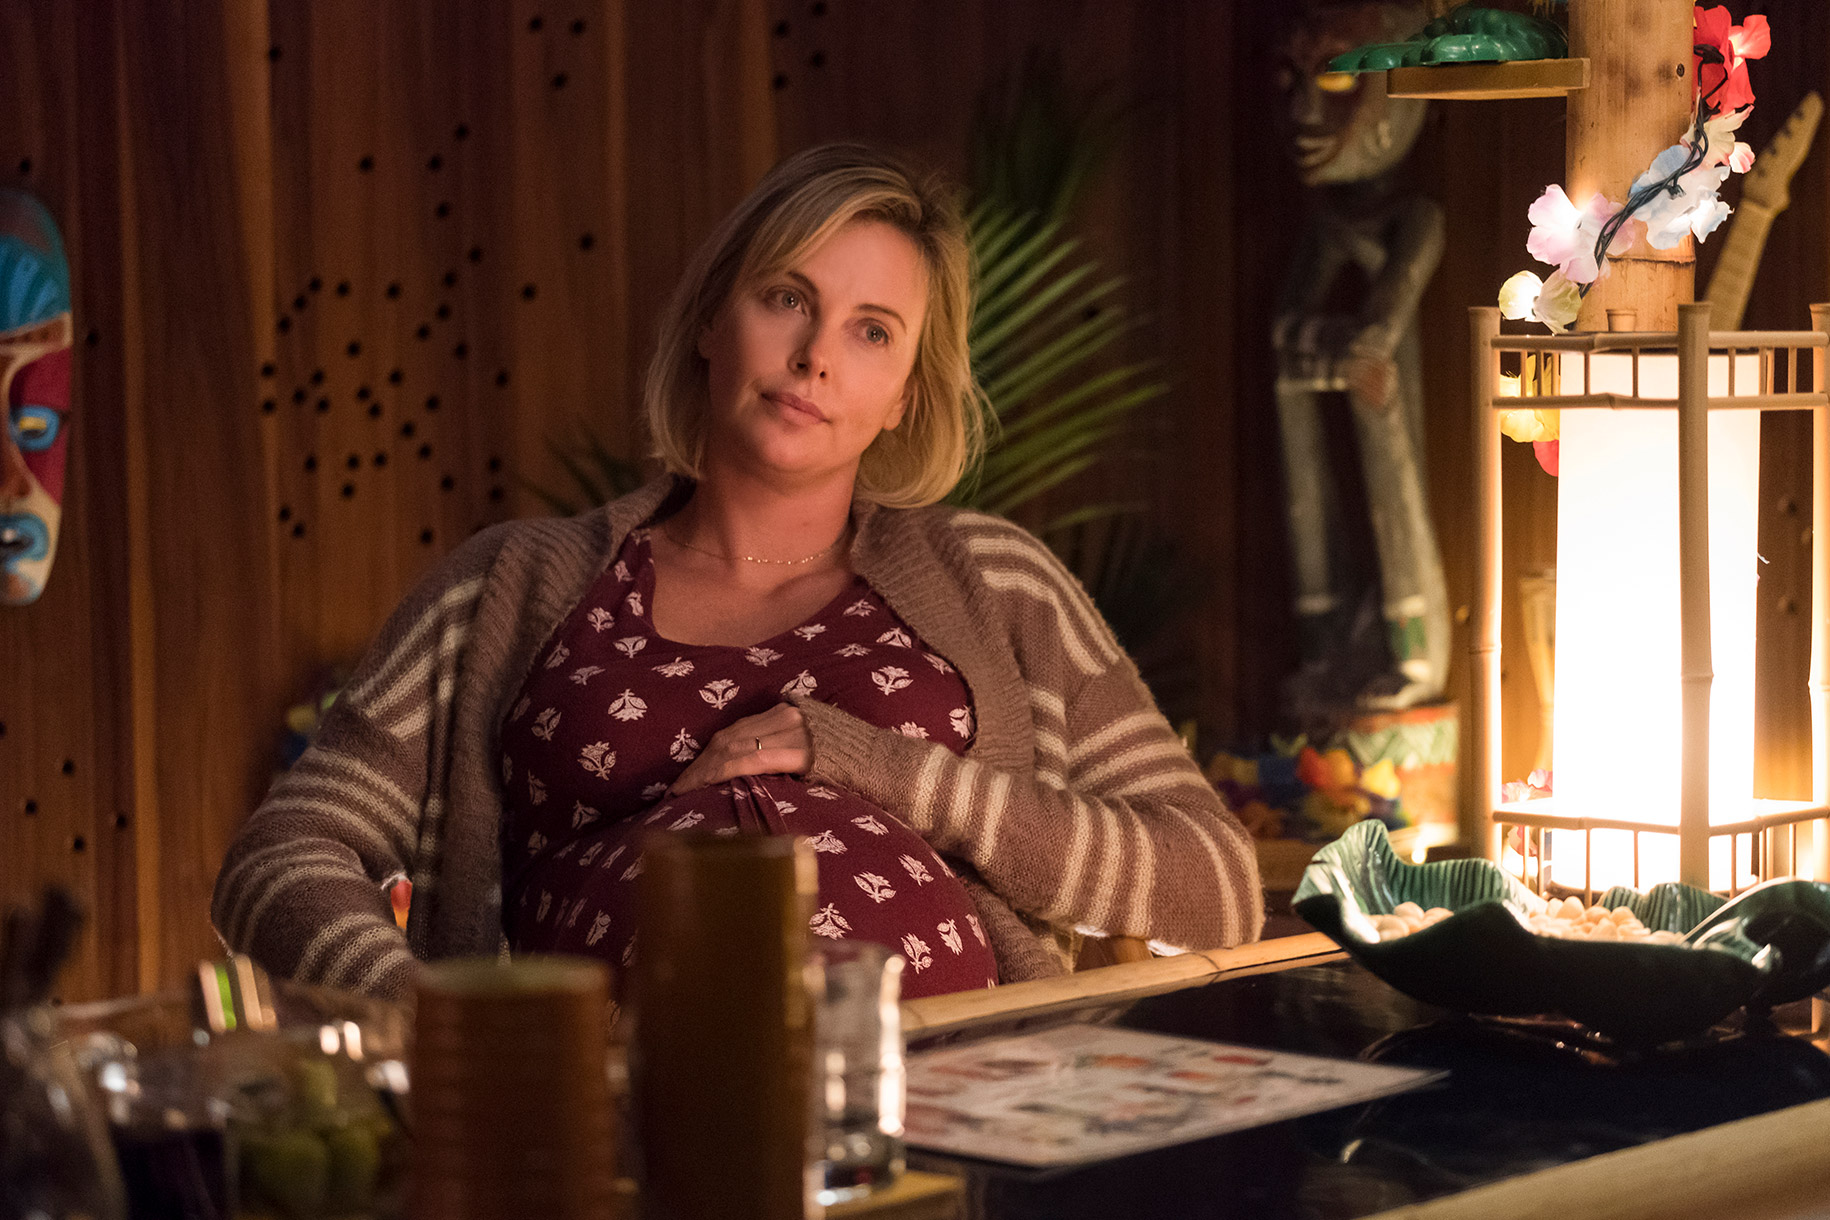 Theron Tackles Motherhood in Uneven 'Tully'